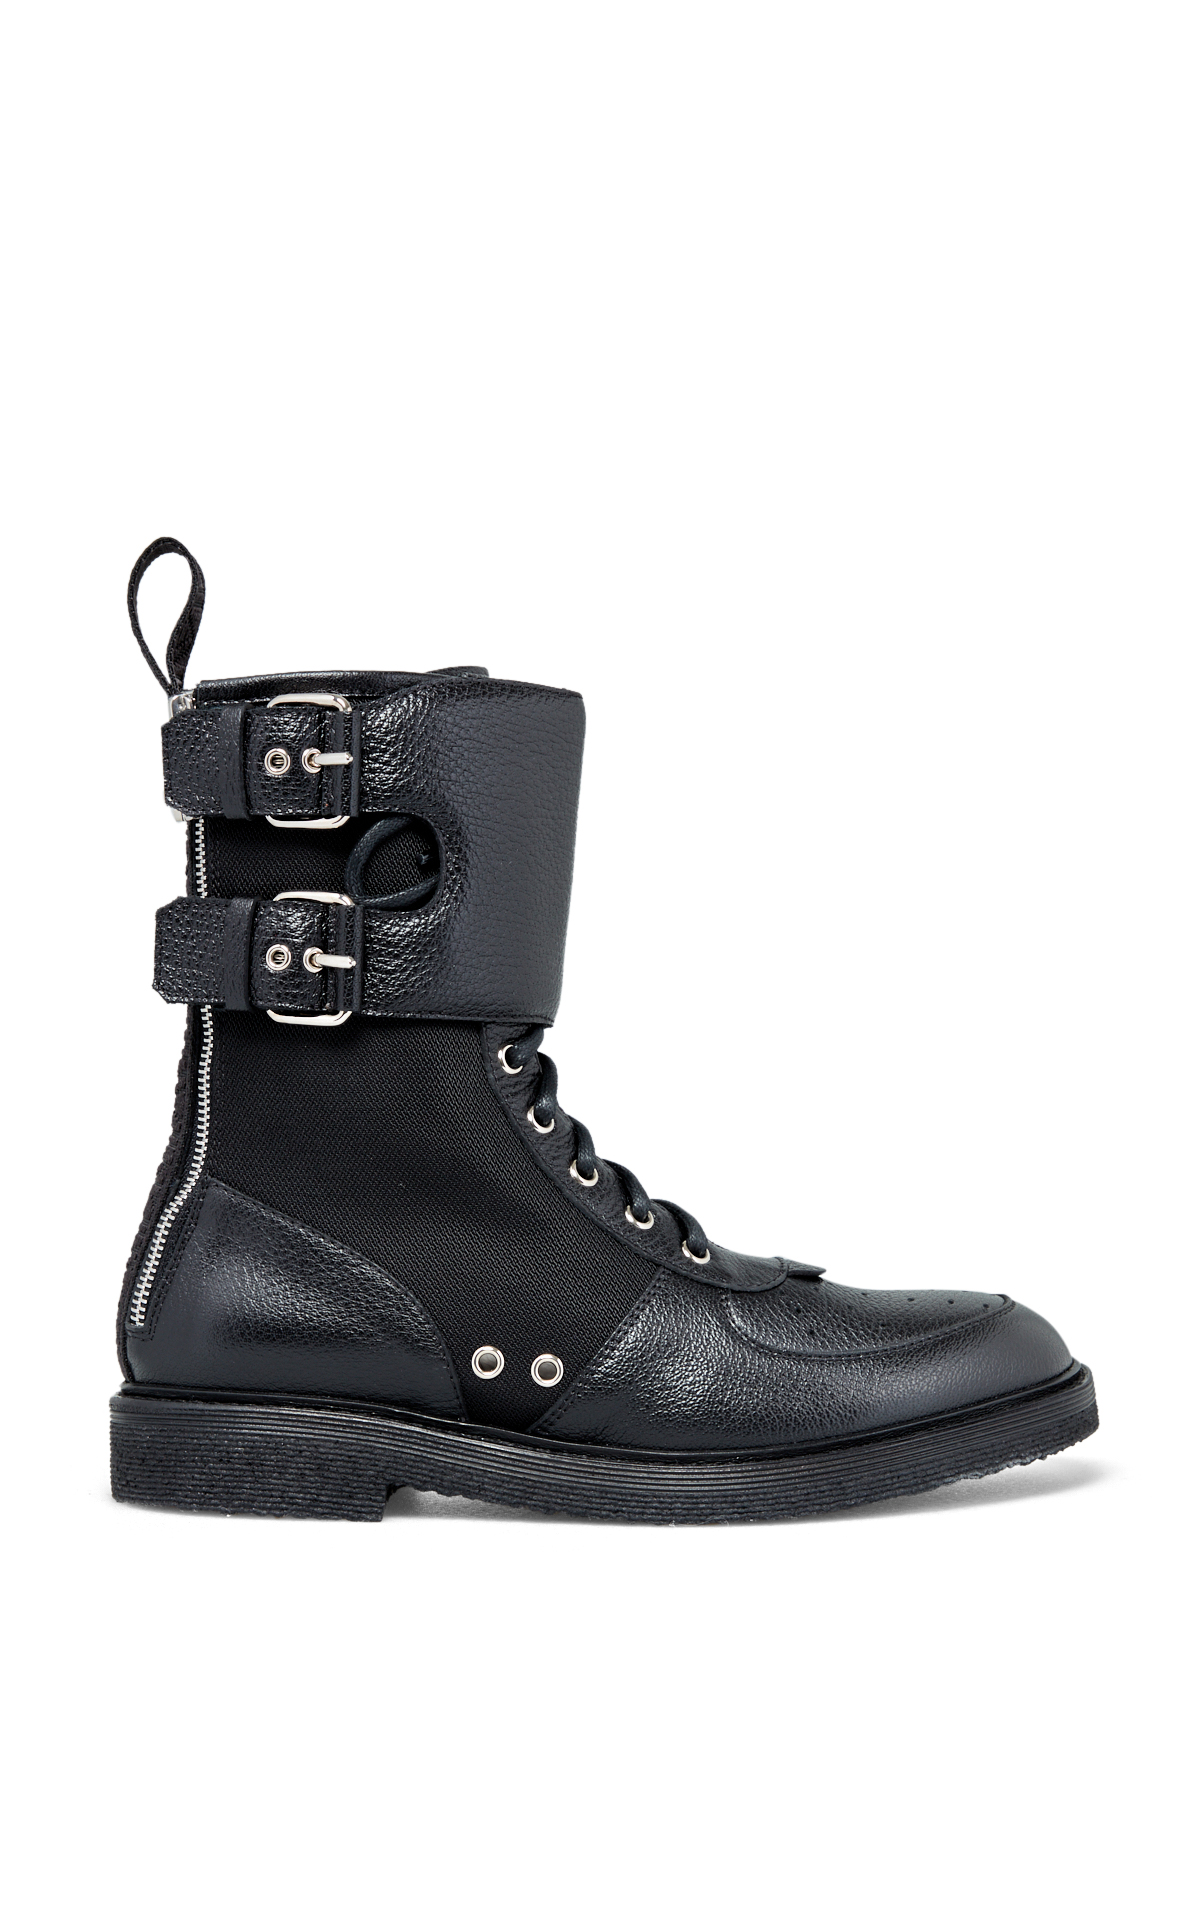 Balmain Men's black rangers' boots